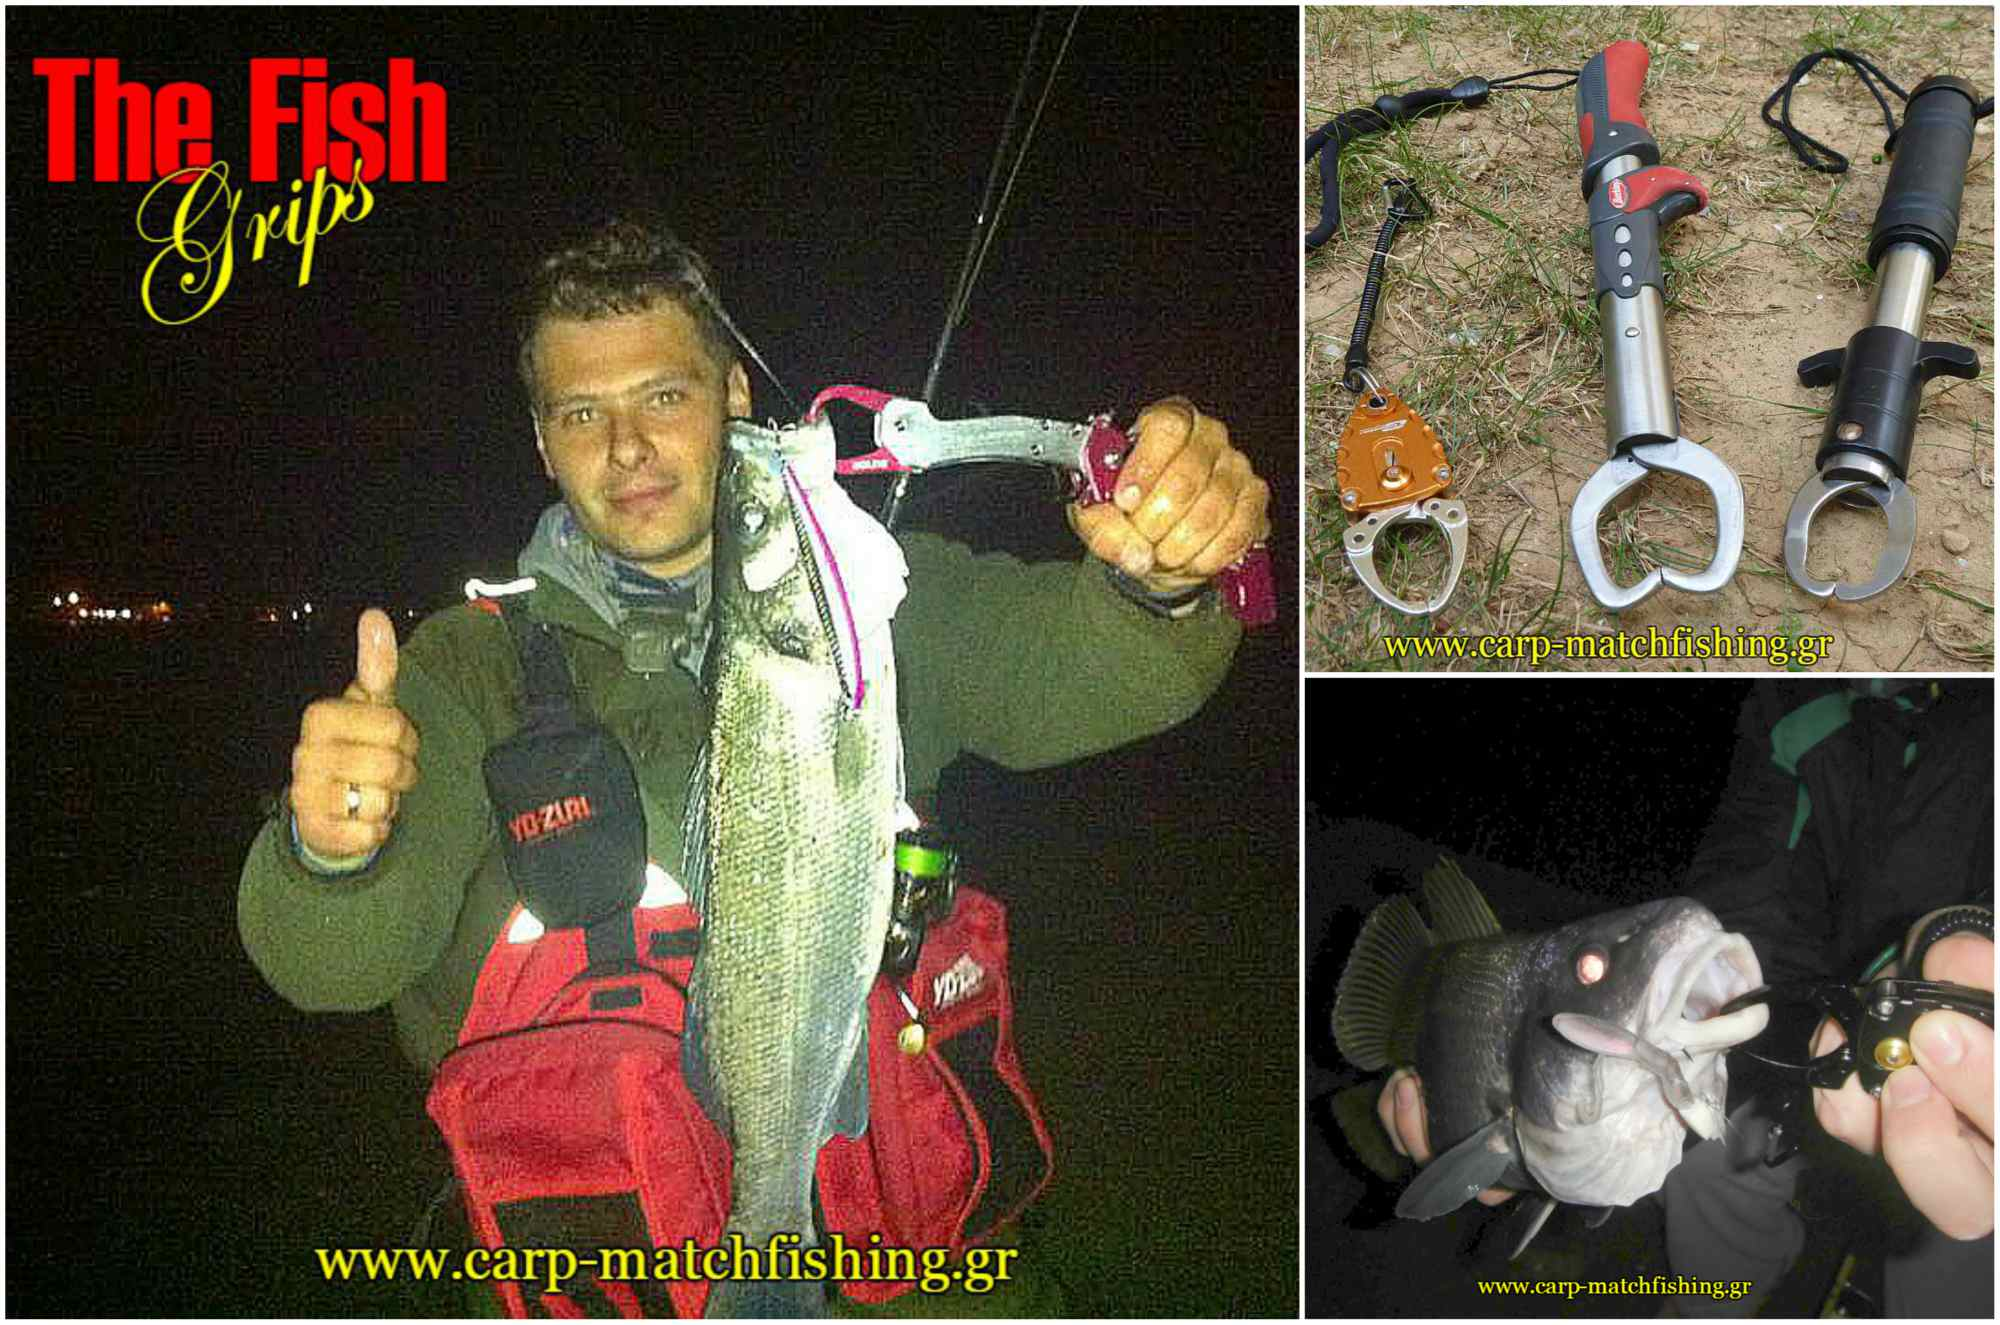 fishgrips-carpmatchfishing